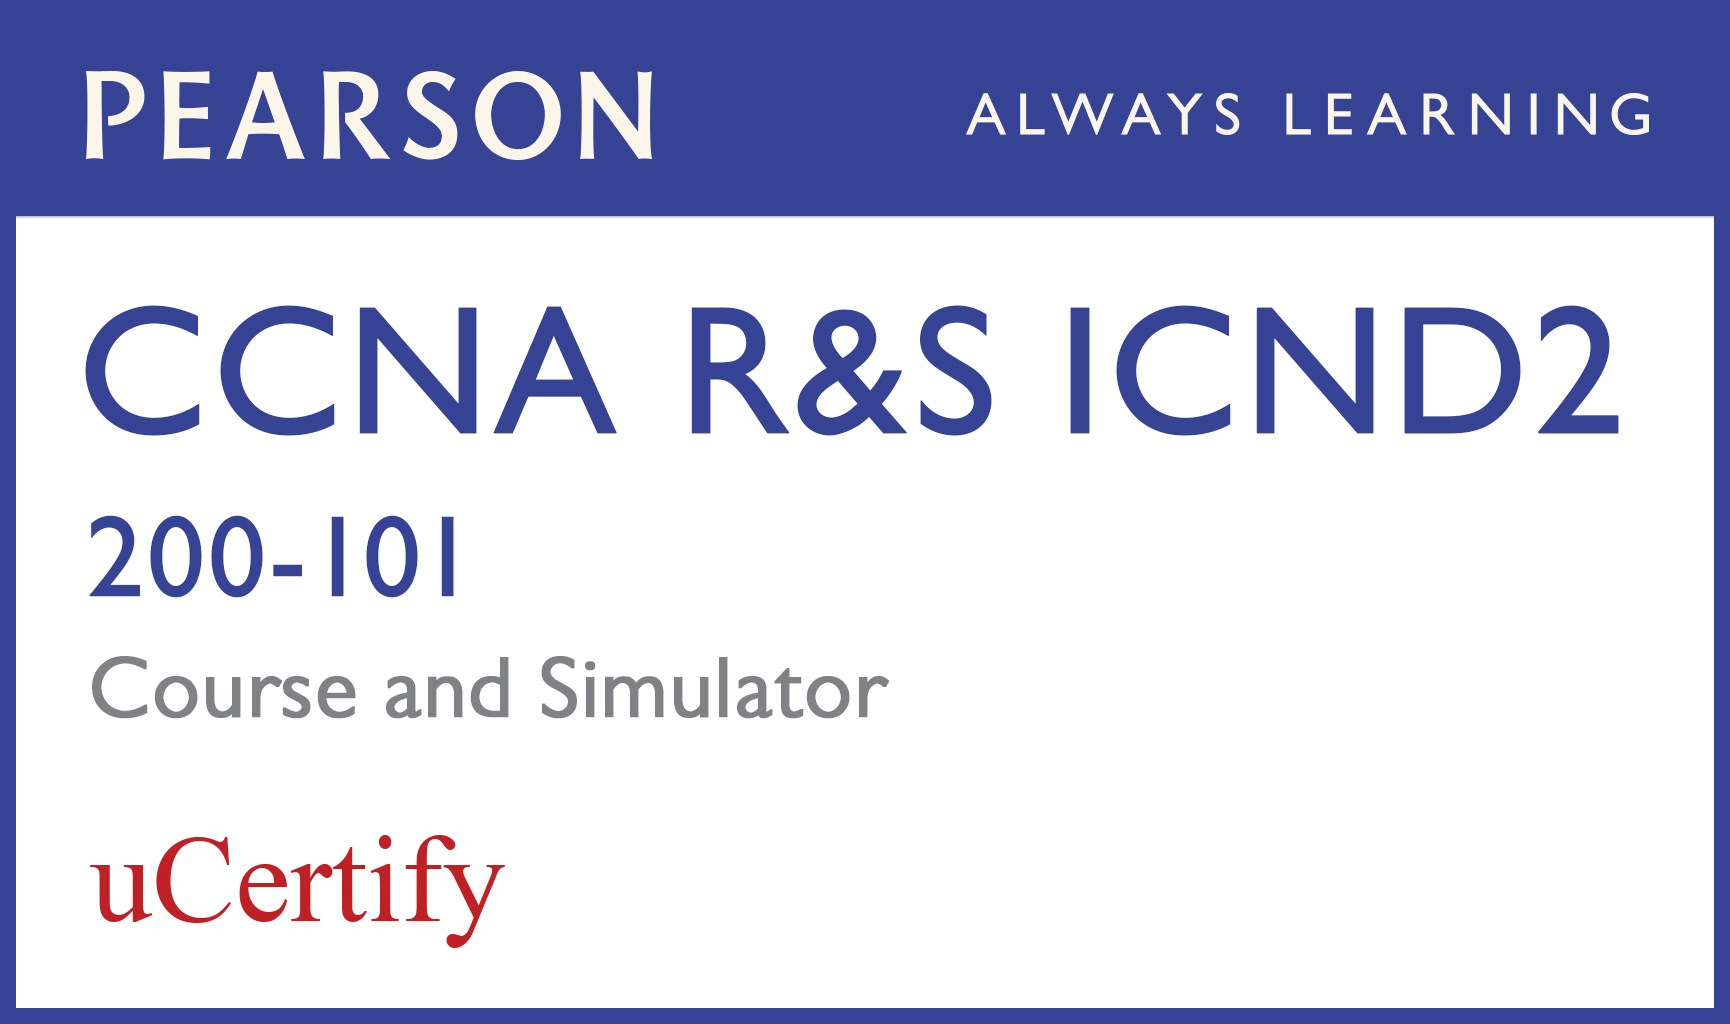 CCNA R&S ICND2 200-101 Pearson uCertify Course and Network Simulator Bundle